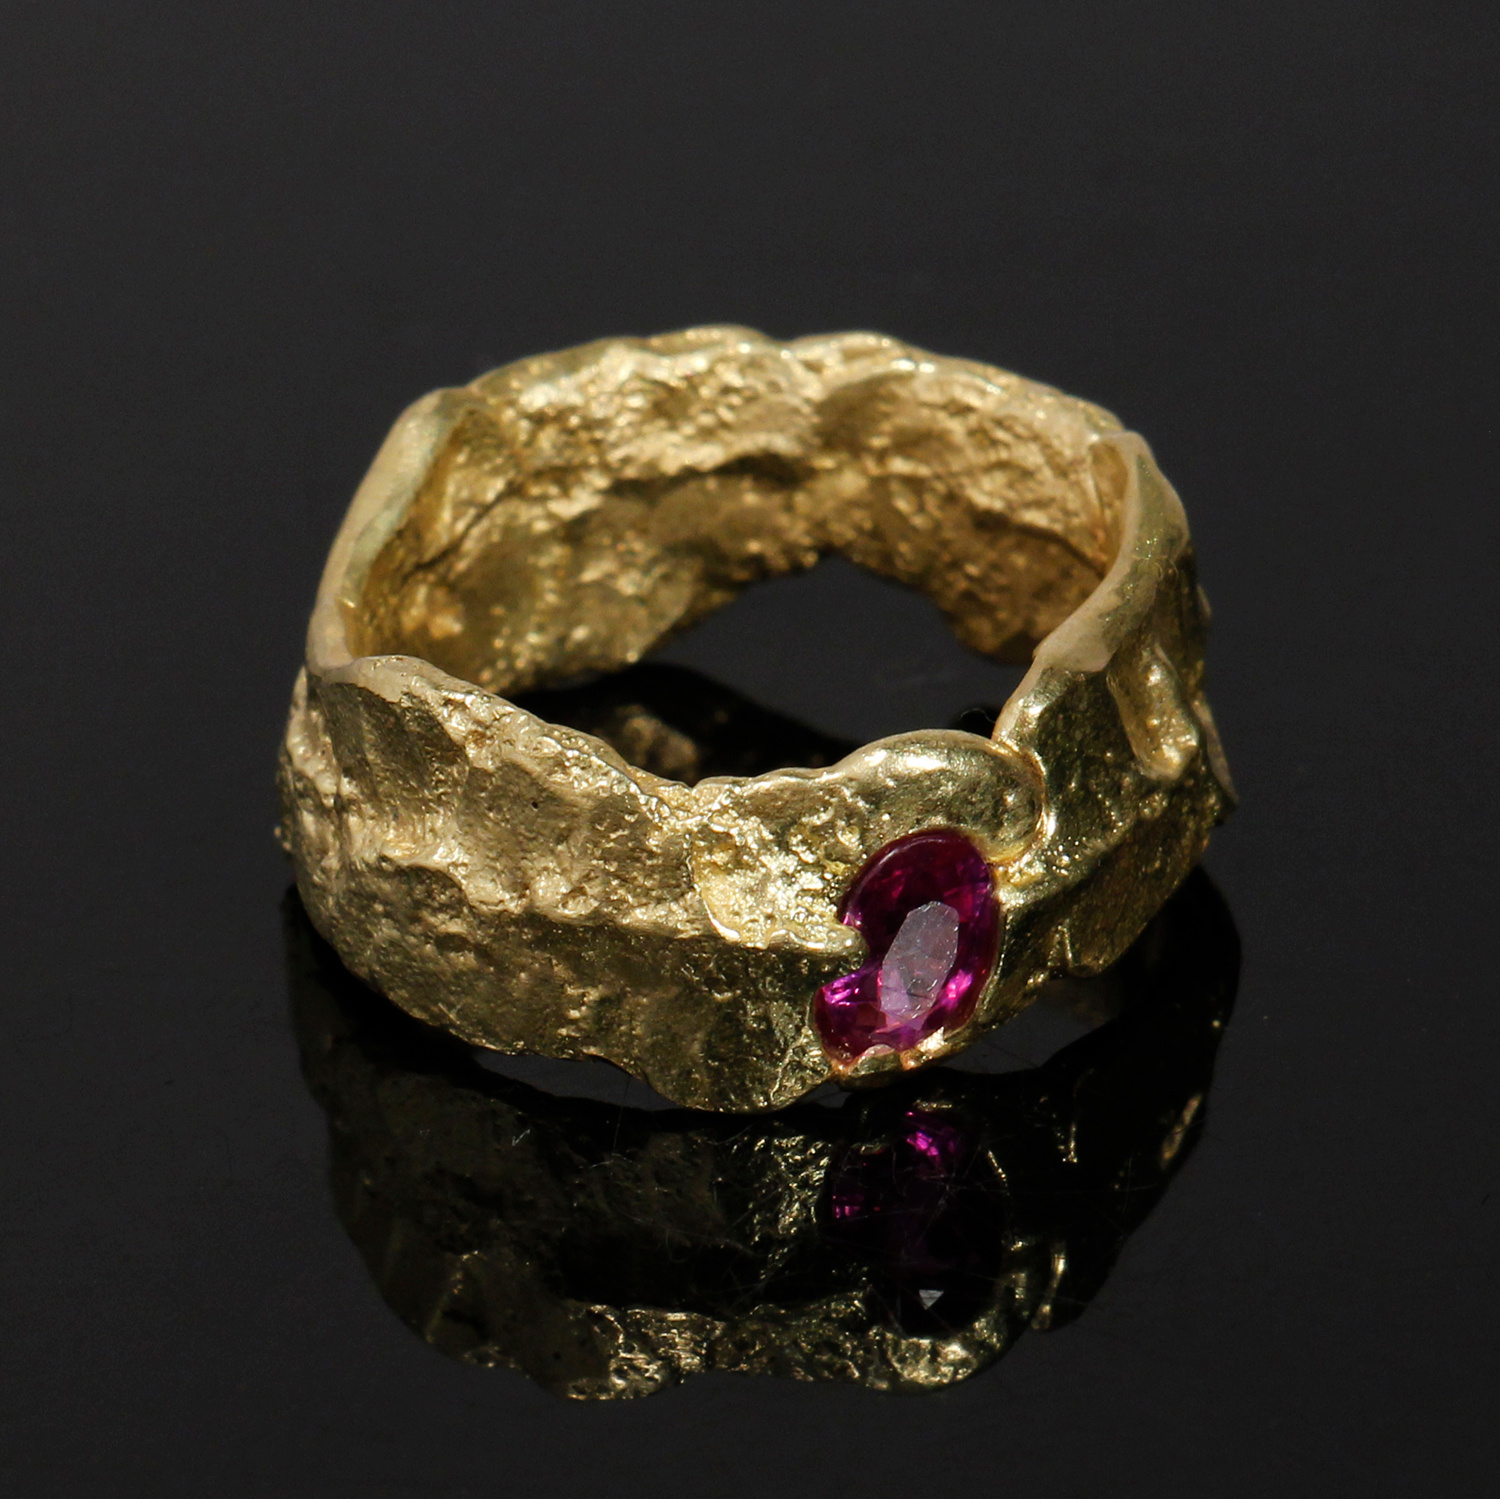 Freeform Ring by Kelvin Birk